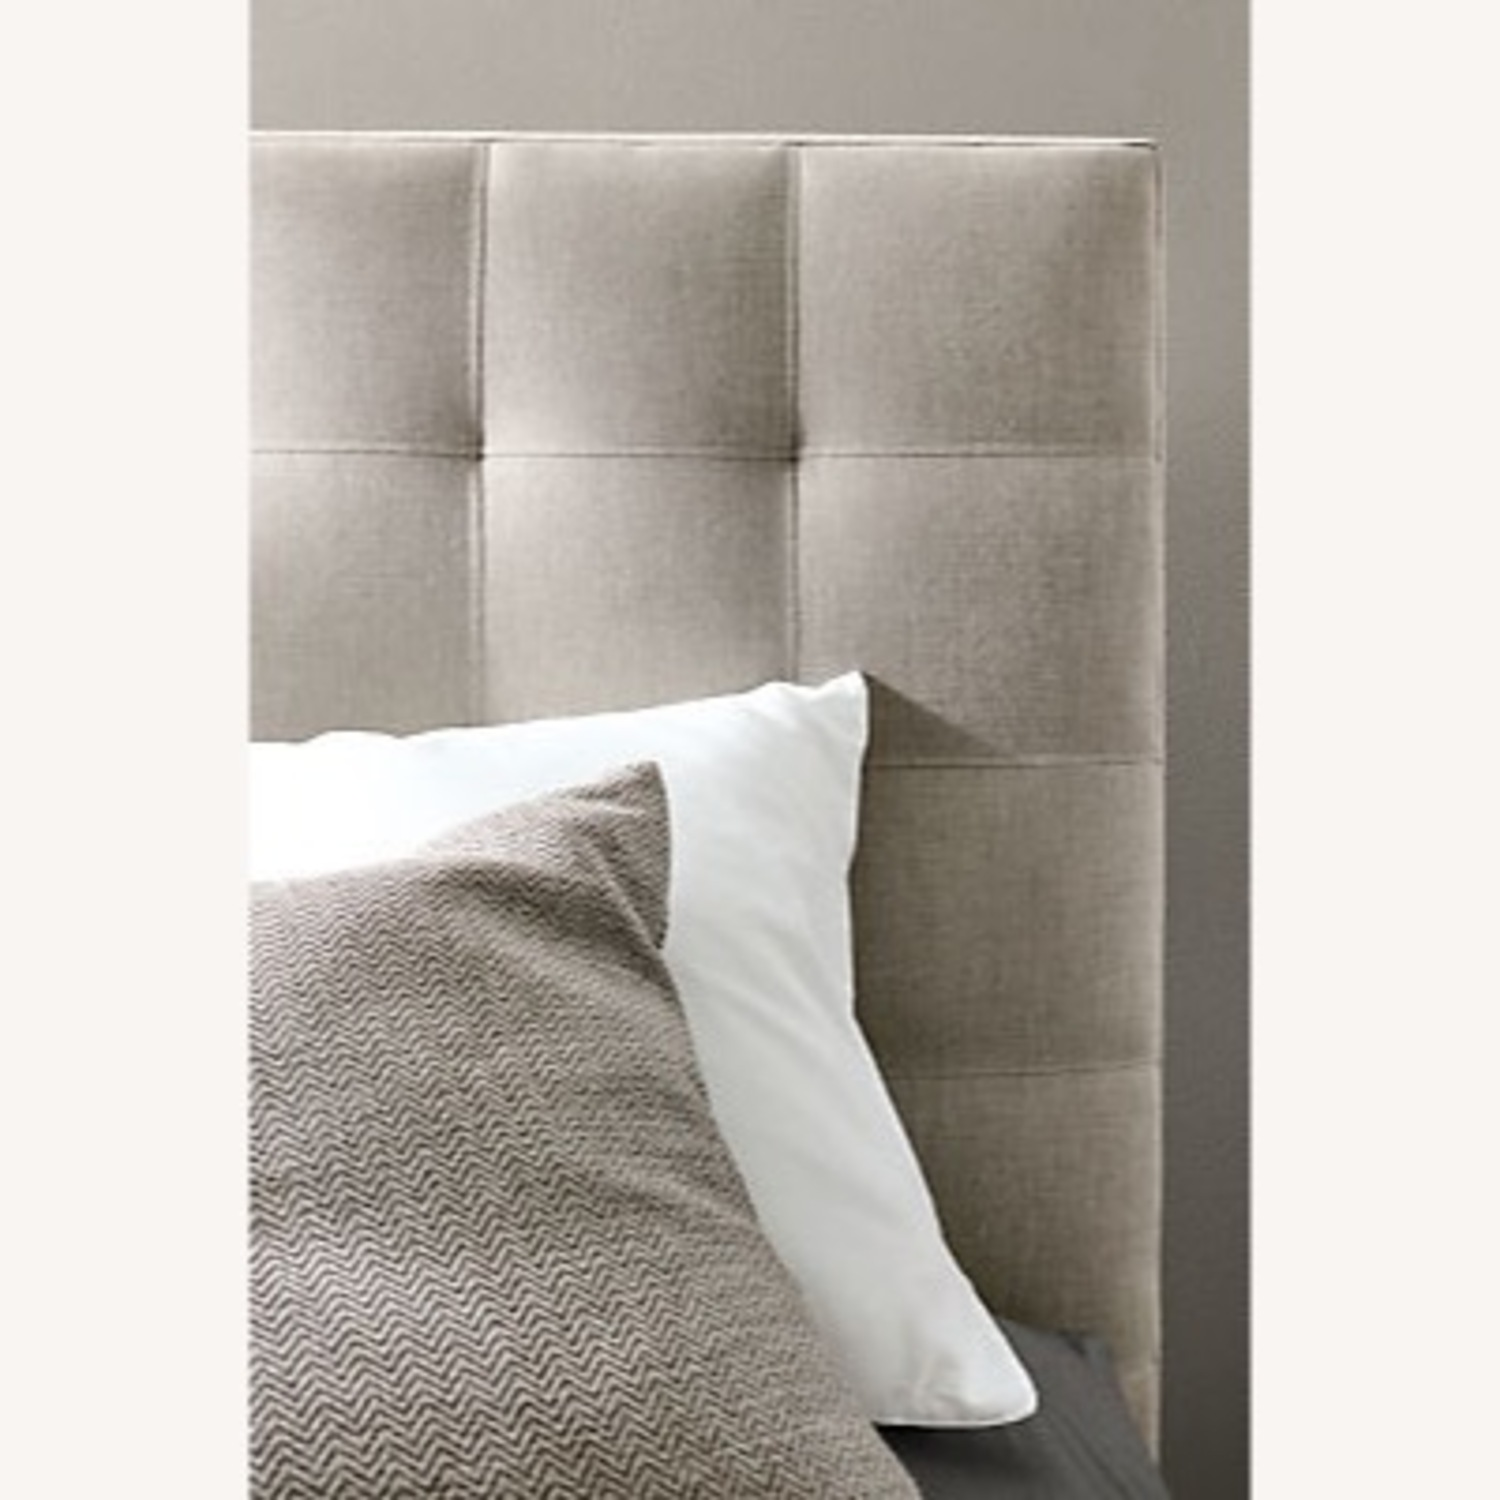 Room & Board Queen Size Light Grey Avery Bed - image-5